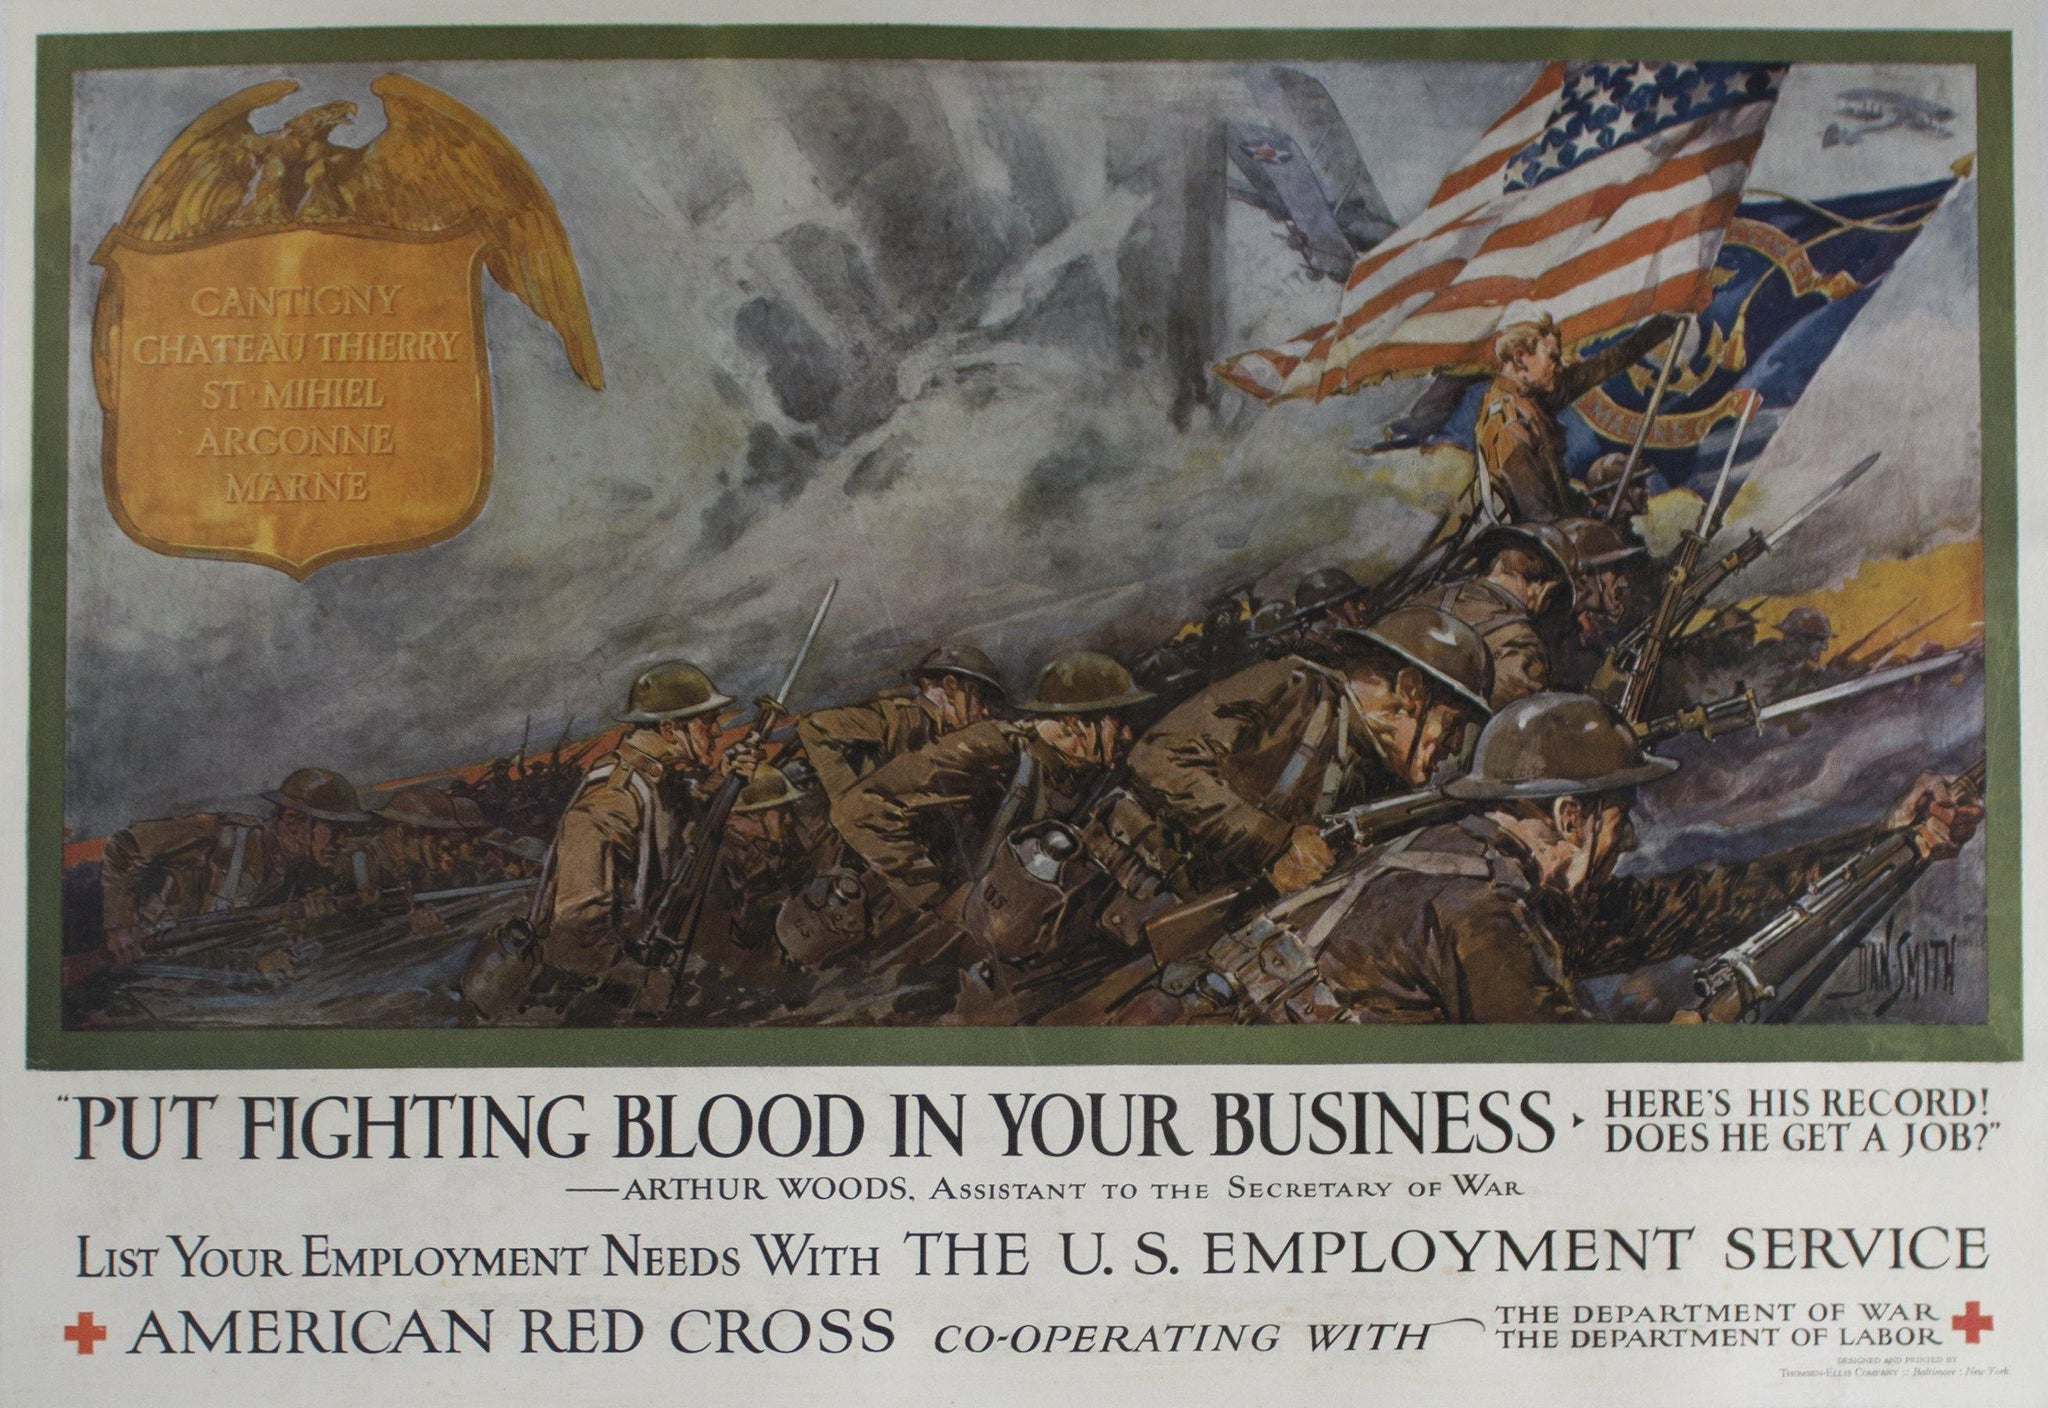 c. 1917 Put Fighting Blood in Your Business | American Red Cross by Dan Smith - Golden Age Posters